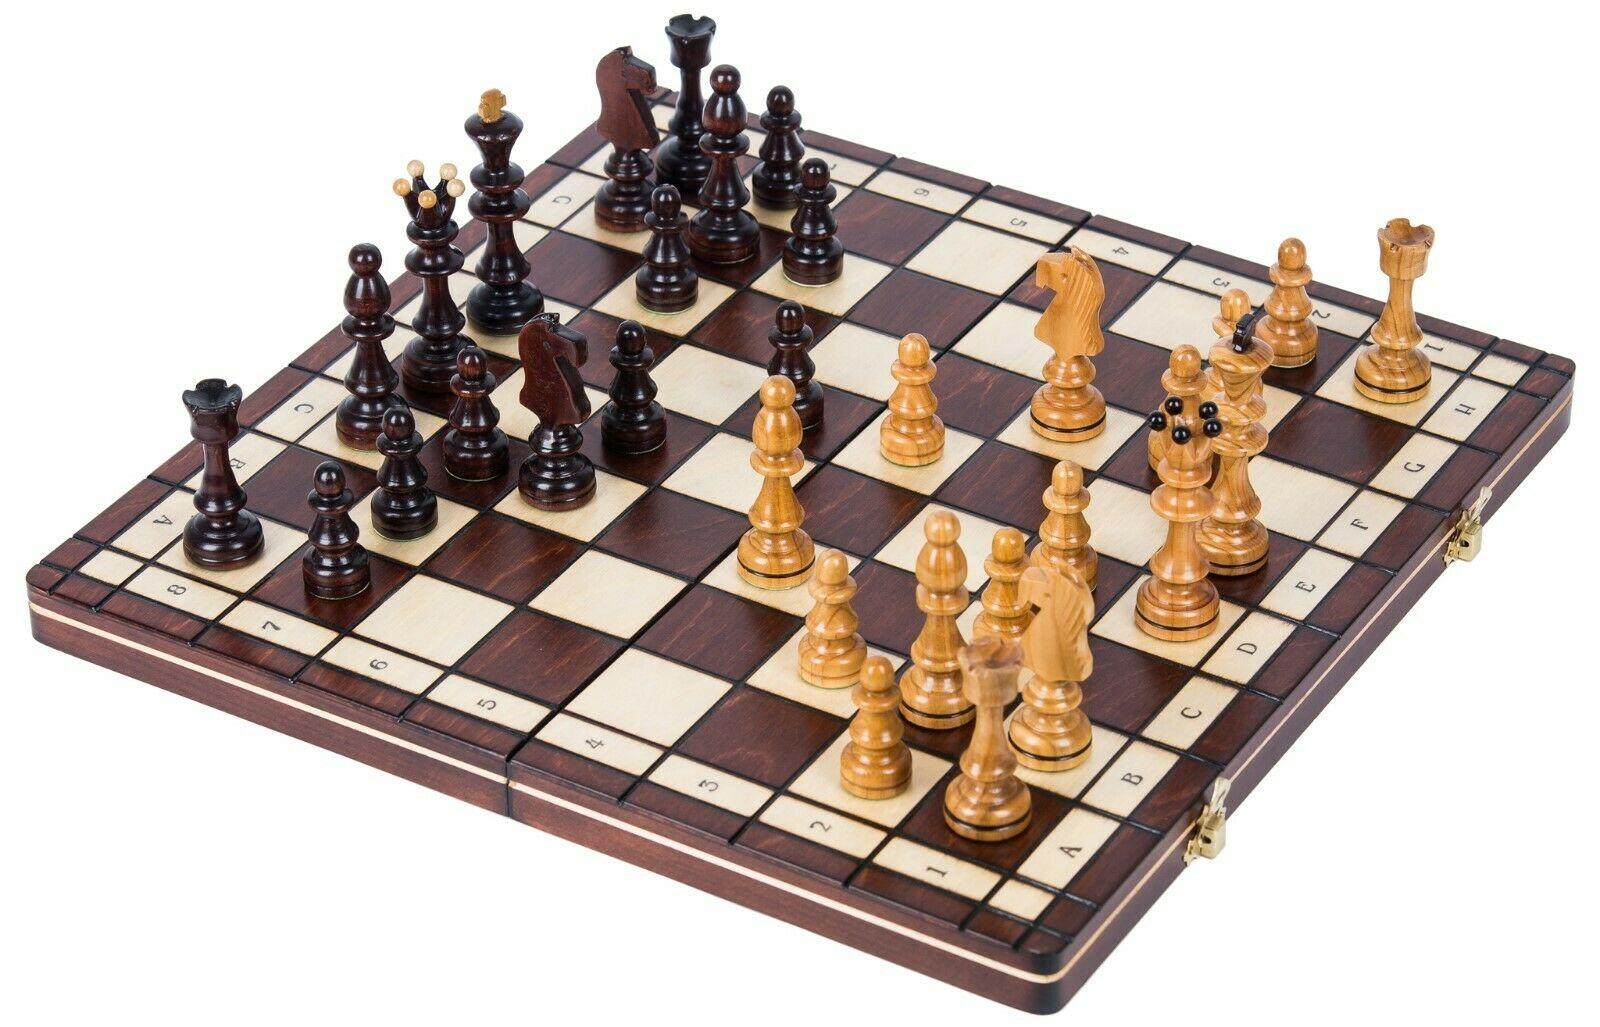 SQUARE - Wooden Chess Set SENATOR - Chessboard - 40 x 40 cm